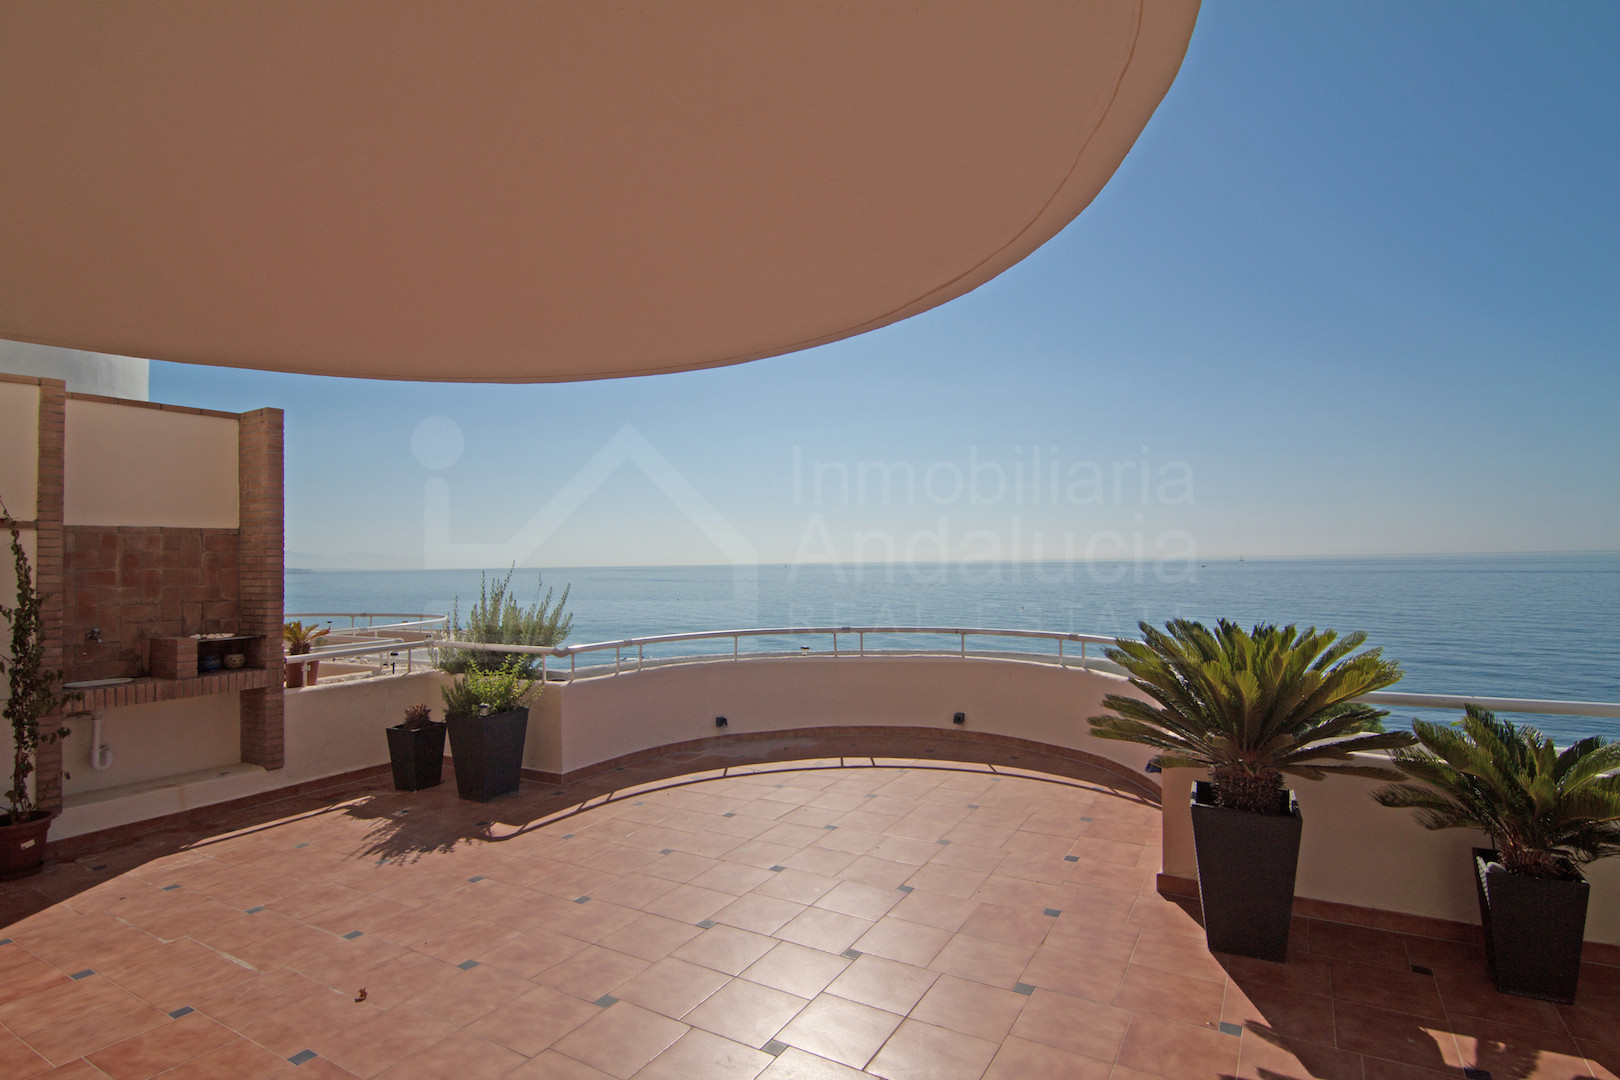 Luxury apartment with unbeatable sea views for sale Sinfonia del Mar ...